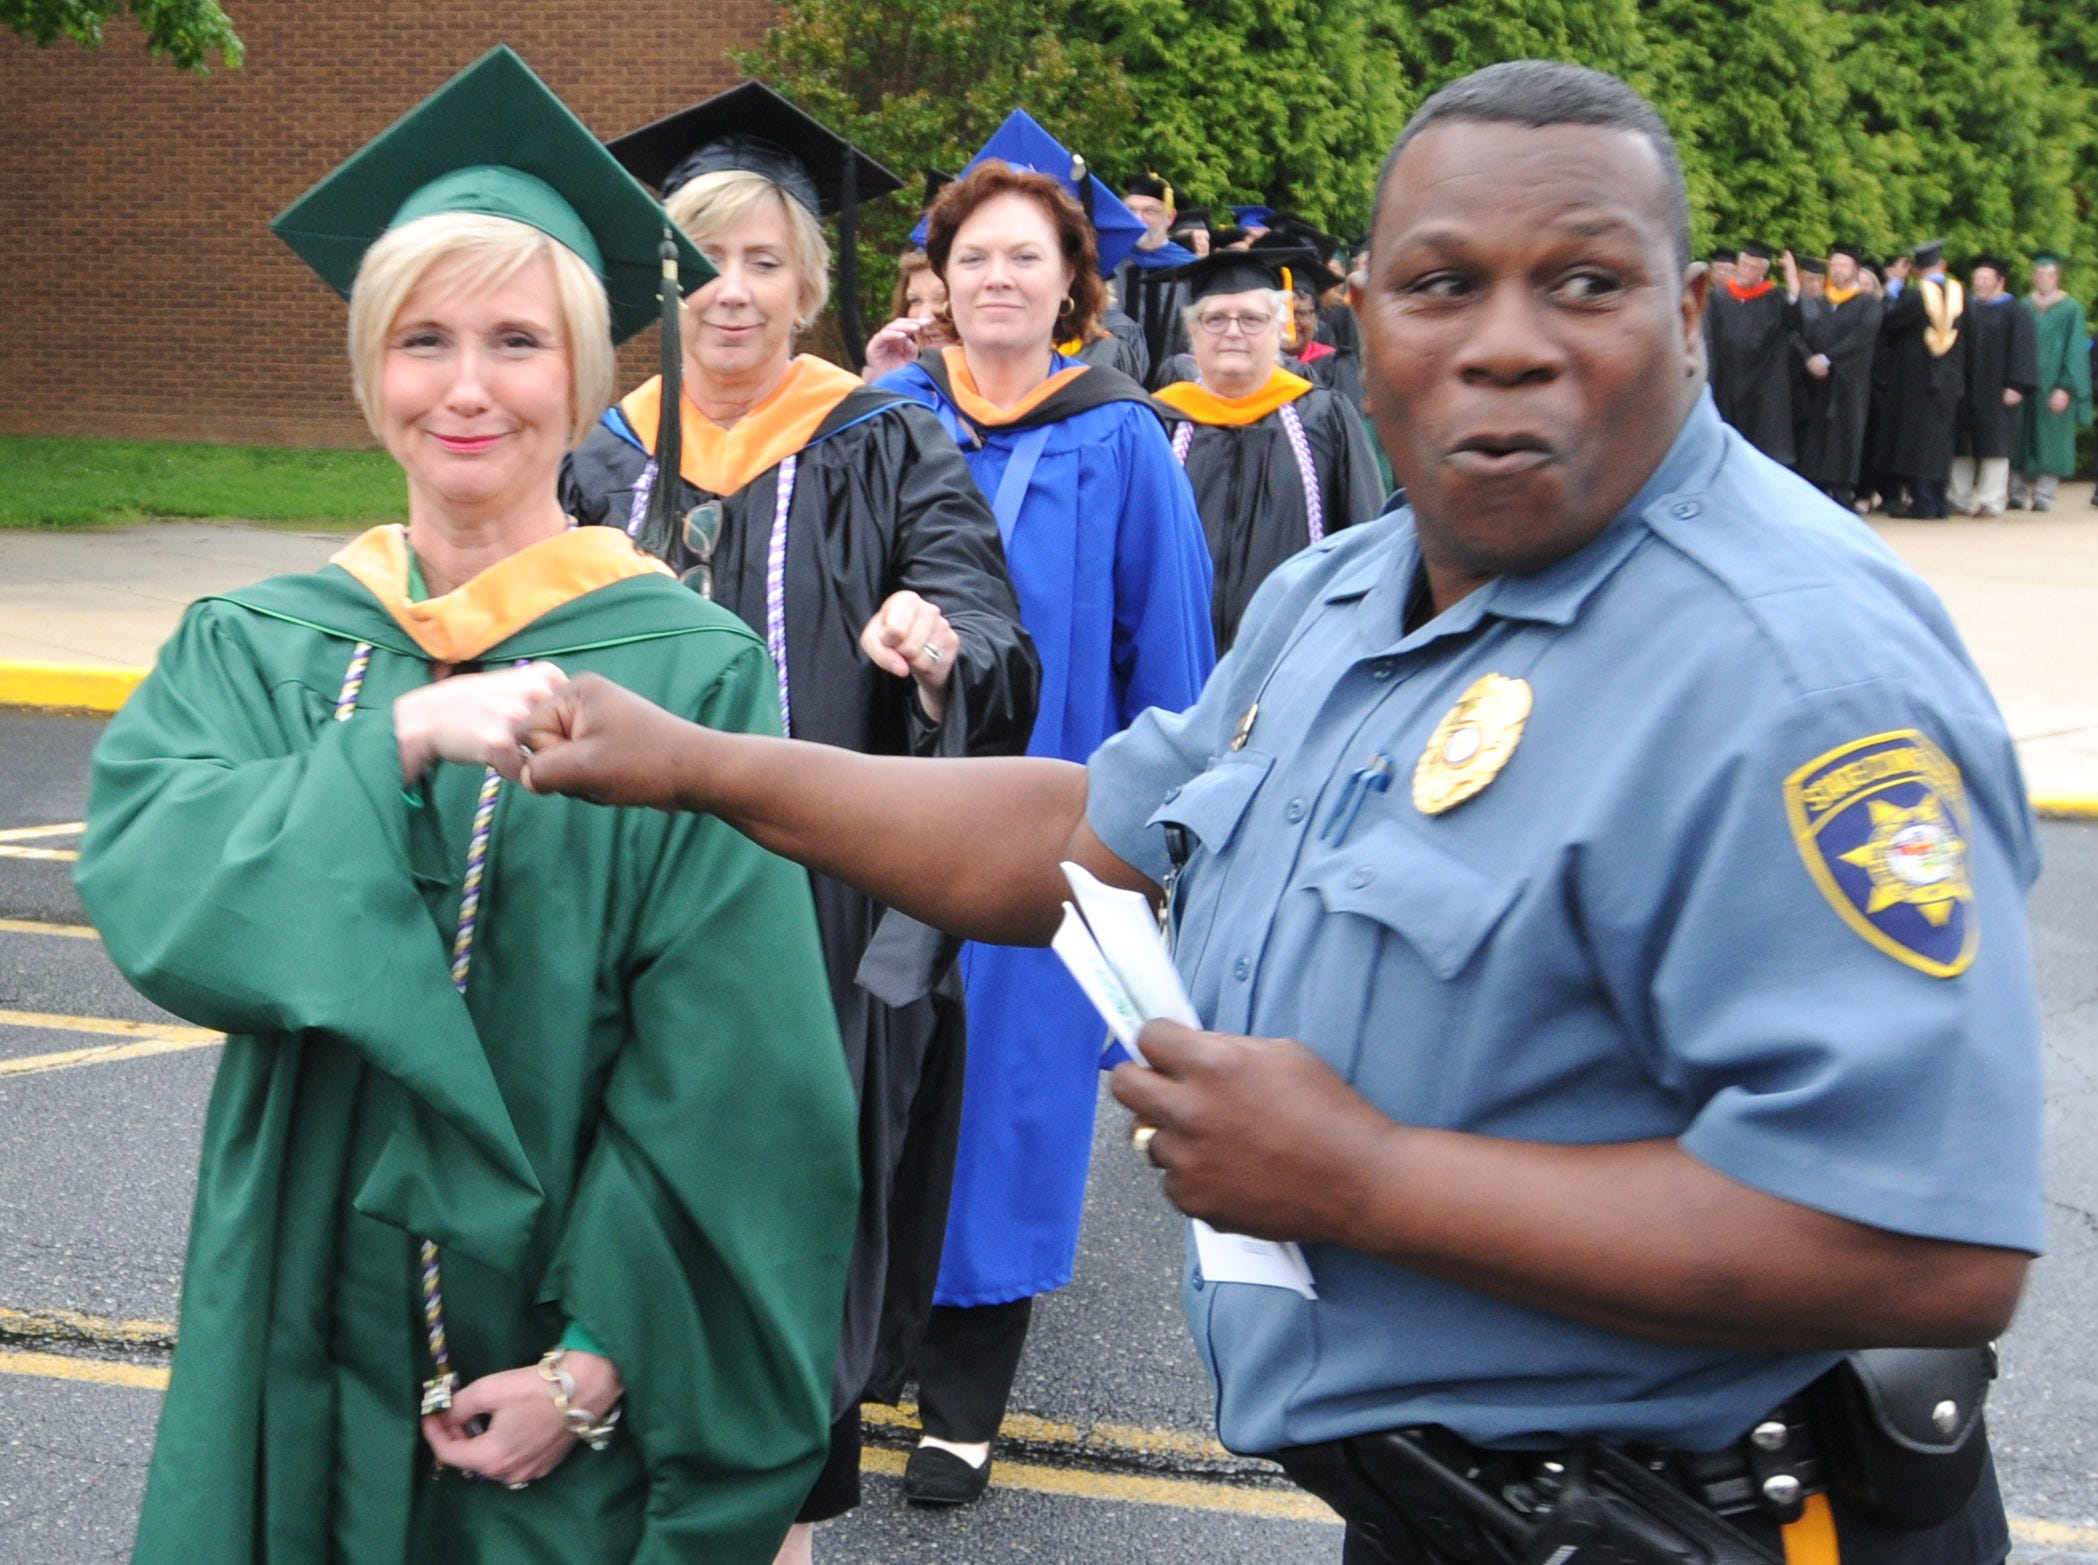 DelTech Terry Campus constable Mike Snead greeting students in the procession.